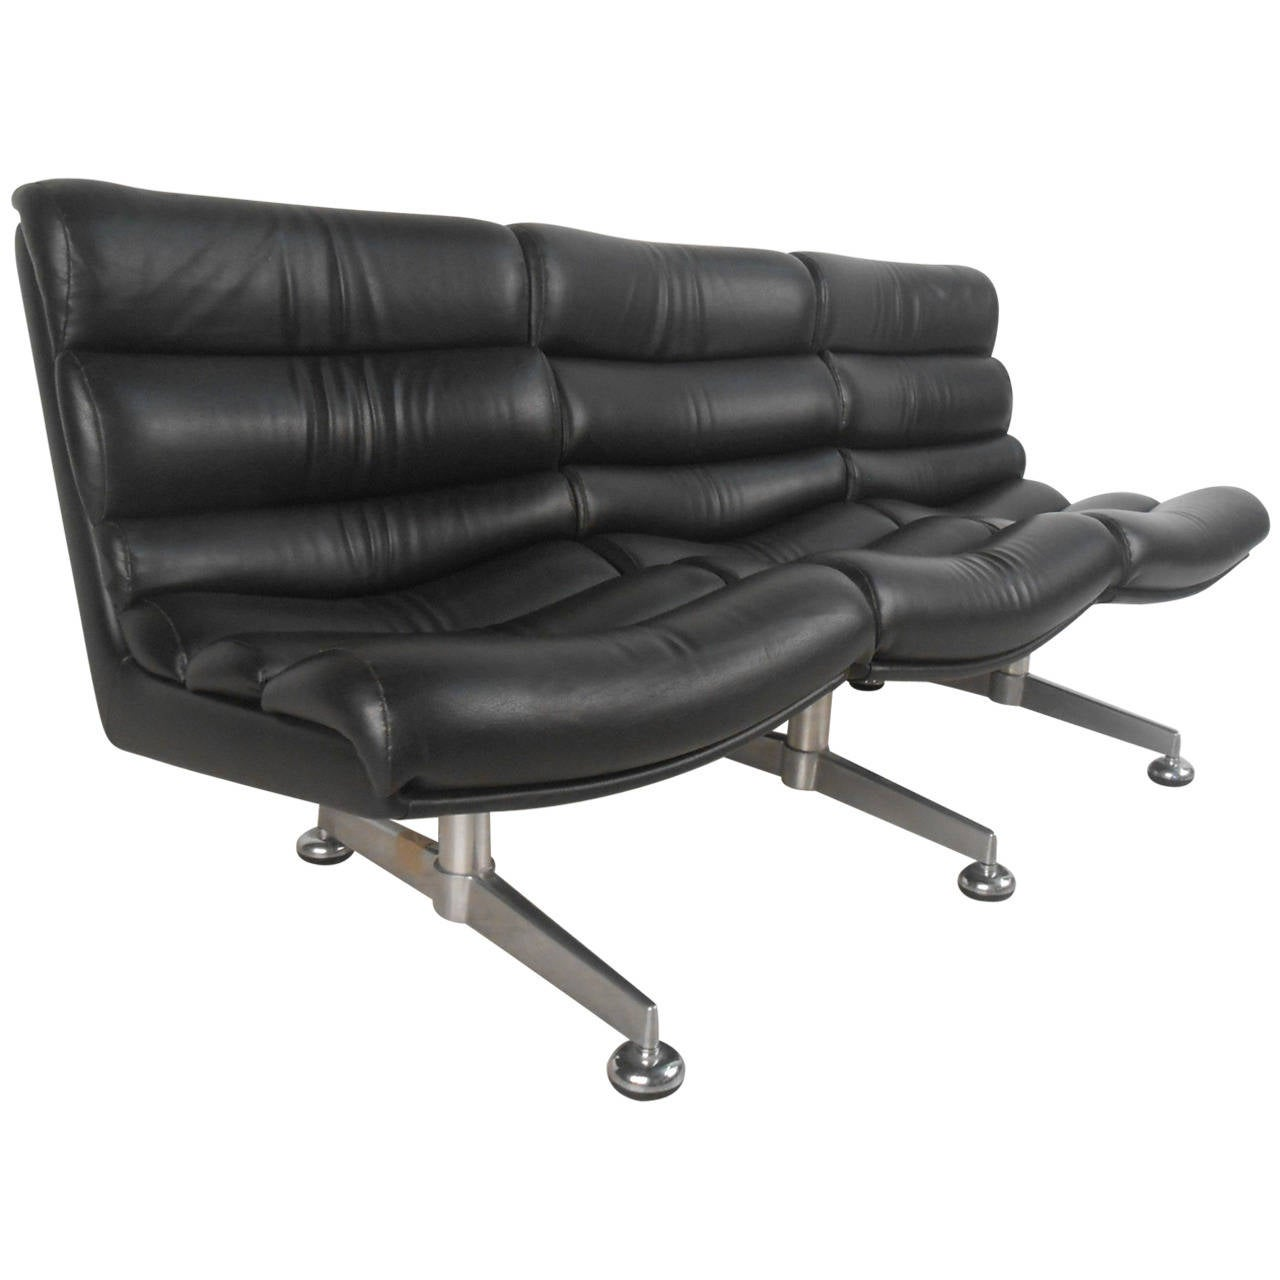 Unique mid century modern leather three seat airport style for Mid century modern leather sofa